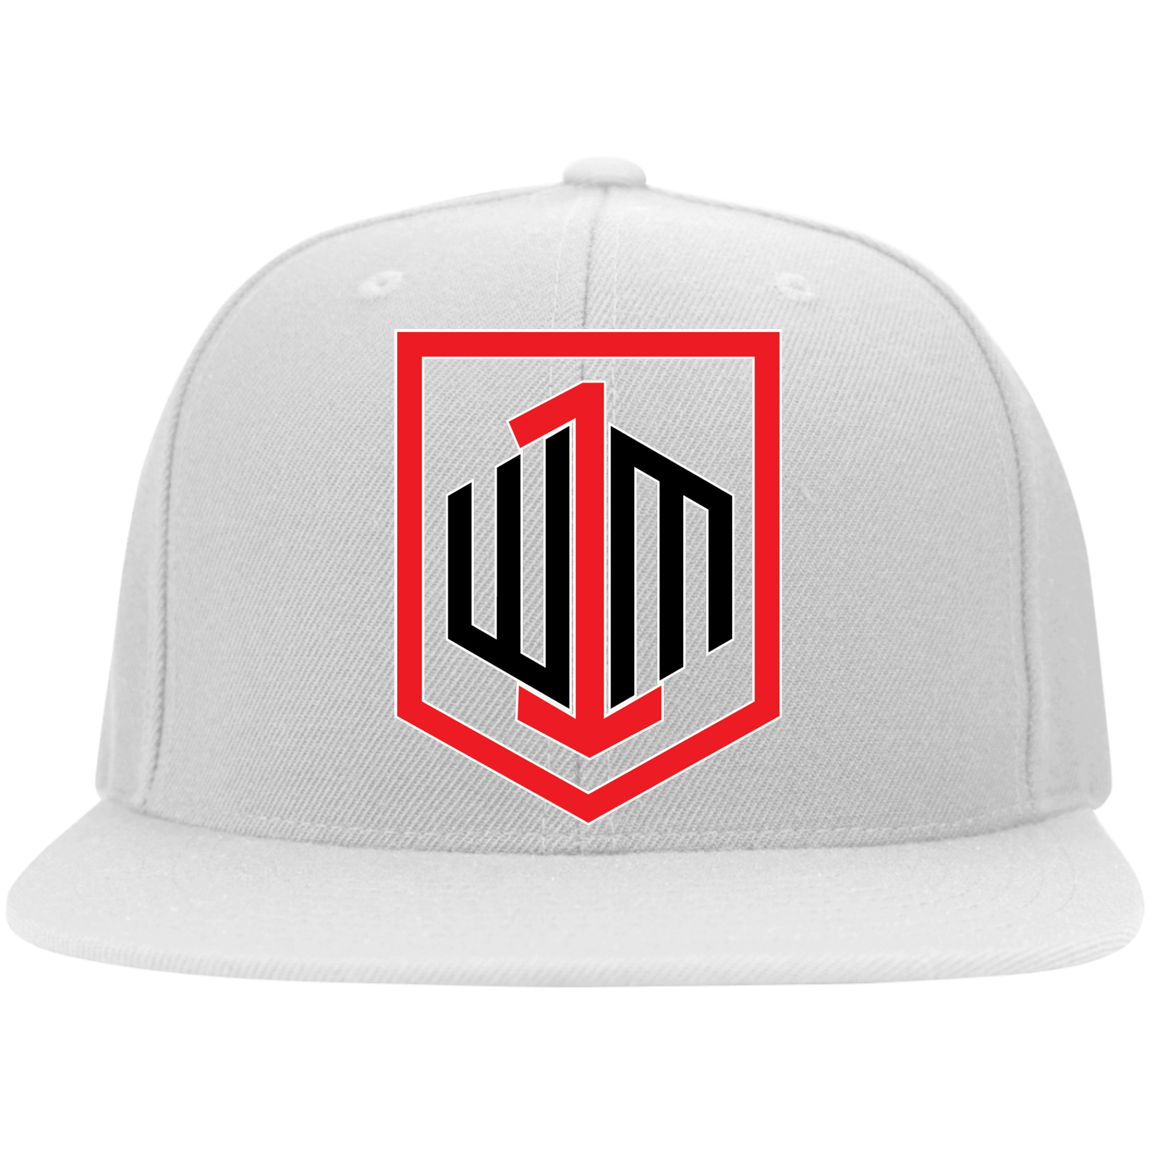 W1M Golf Flat Bill Twill Flexfit Embroidered Cap, 6 Colors and 2 Sizes To Choose From